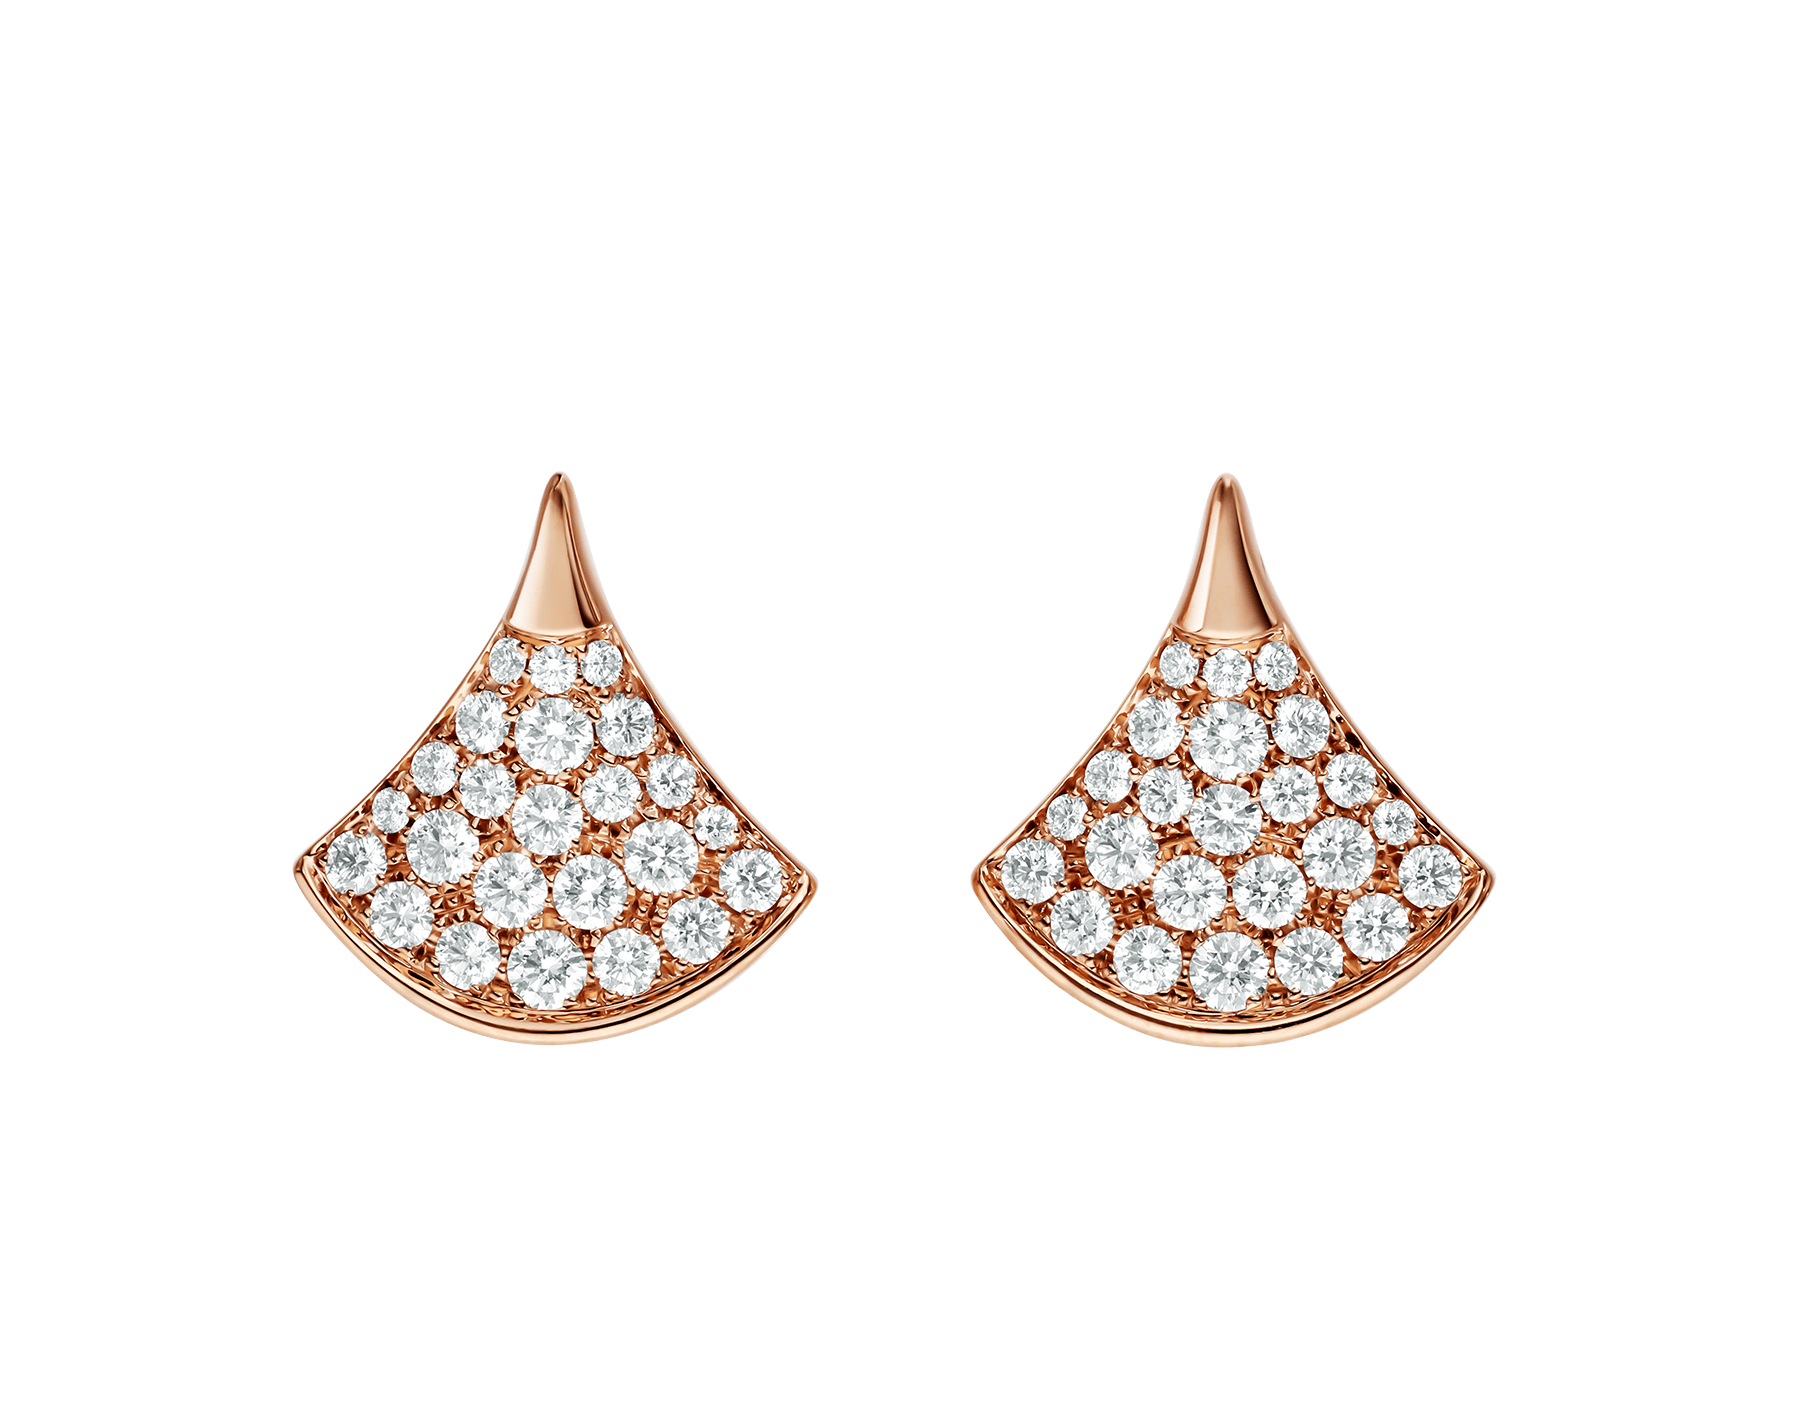 DIVAS' DREAM stud earrings in 18 kt rose gold, set with pavé diamonds (0.90 ct). 352601 image 1